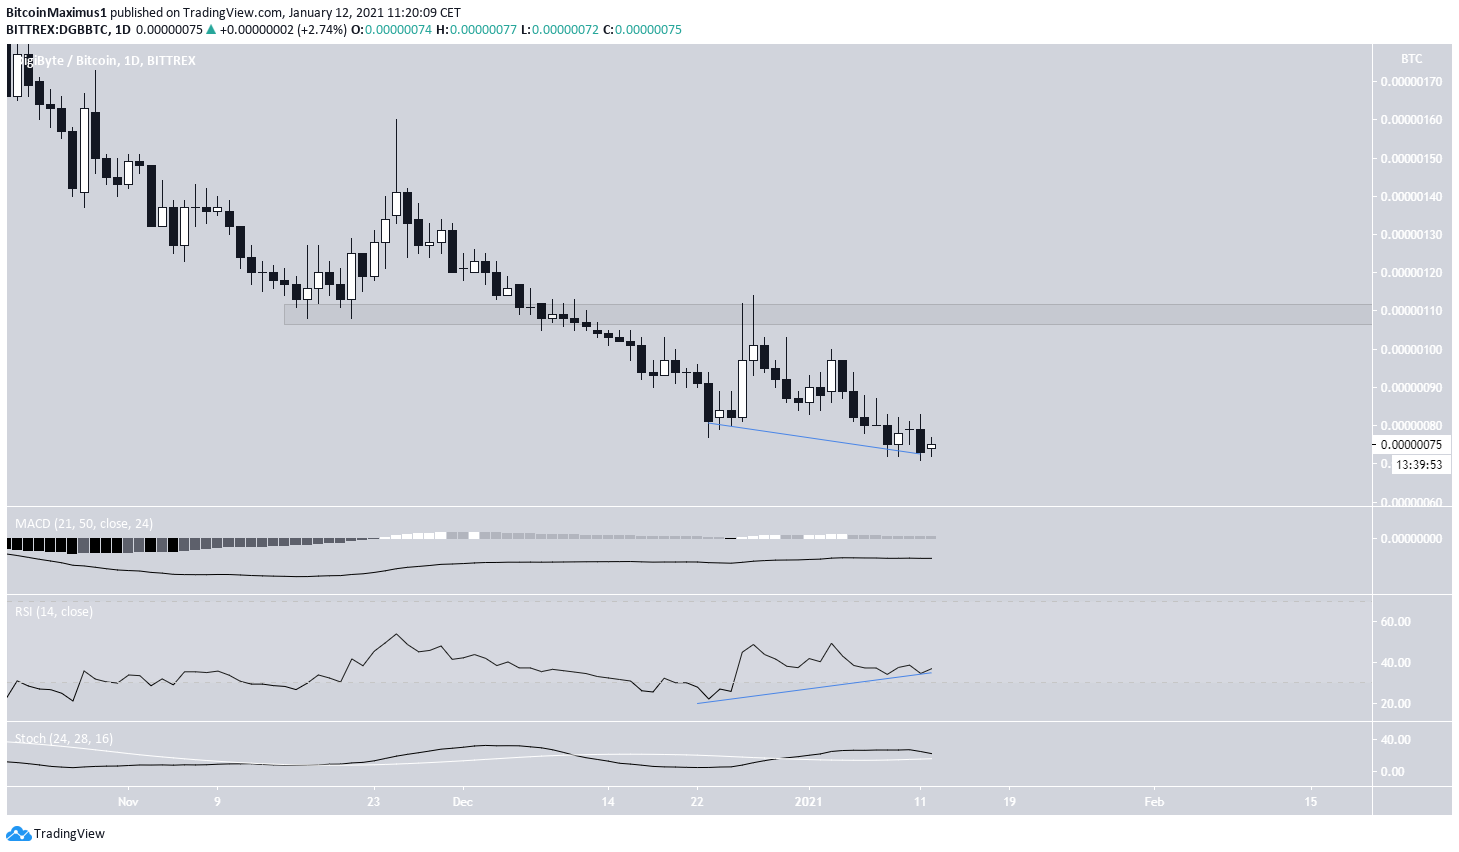 DGB Daily